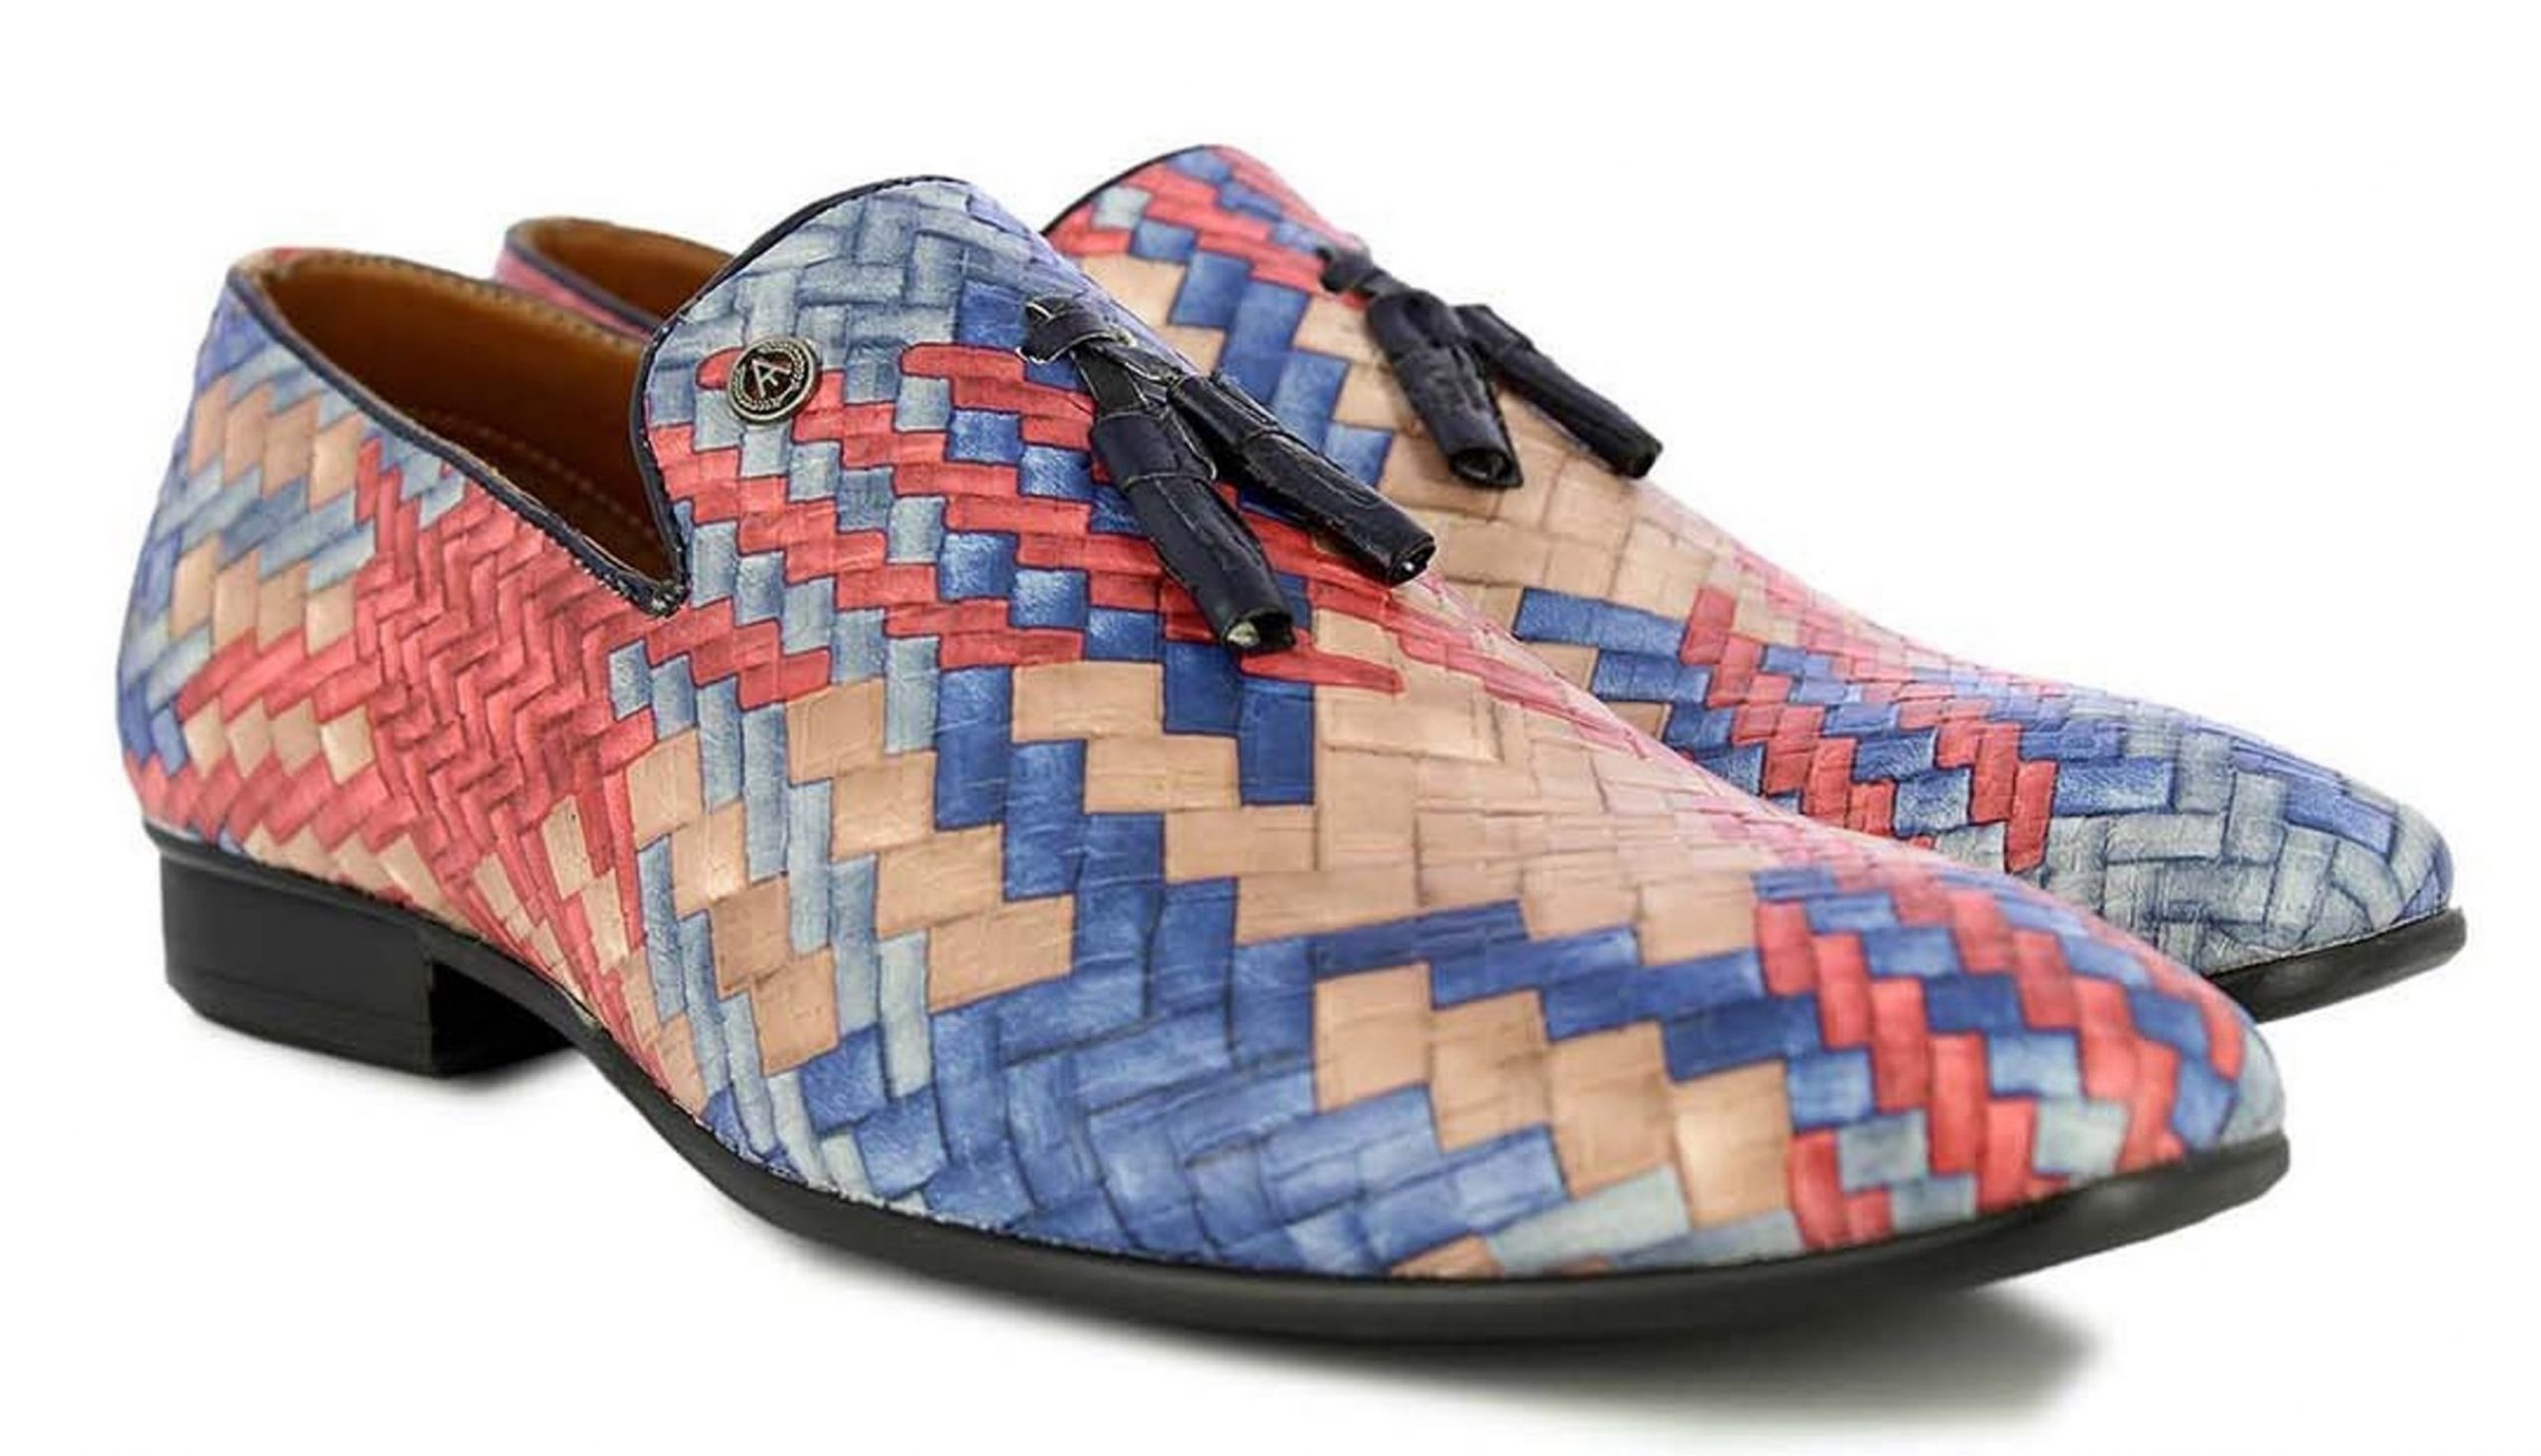 rsz_11alberto_torresi_fleur_red_&_blue_________tassel_slip_on_shoes_mrp_rs_6495